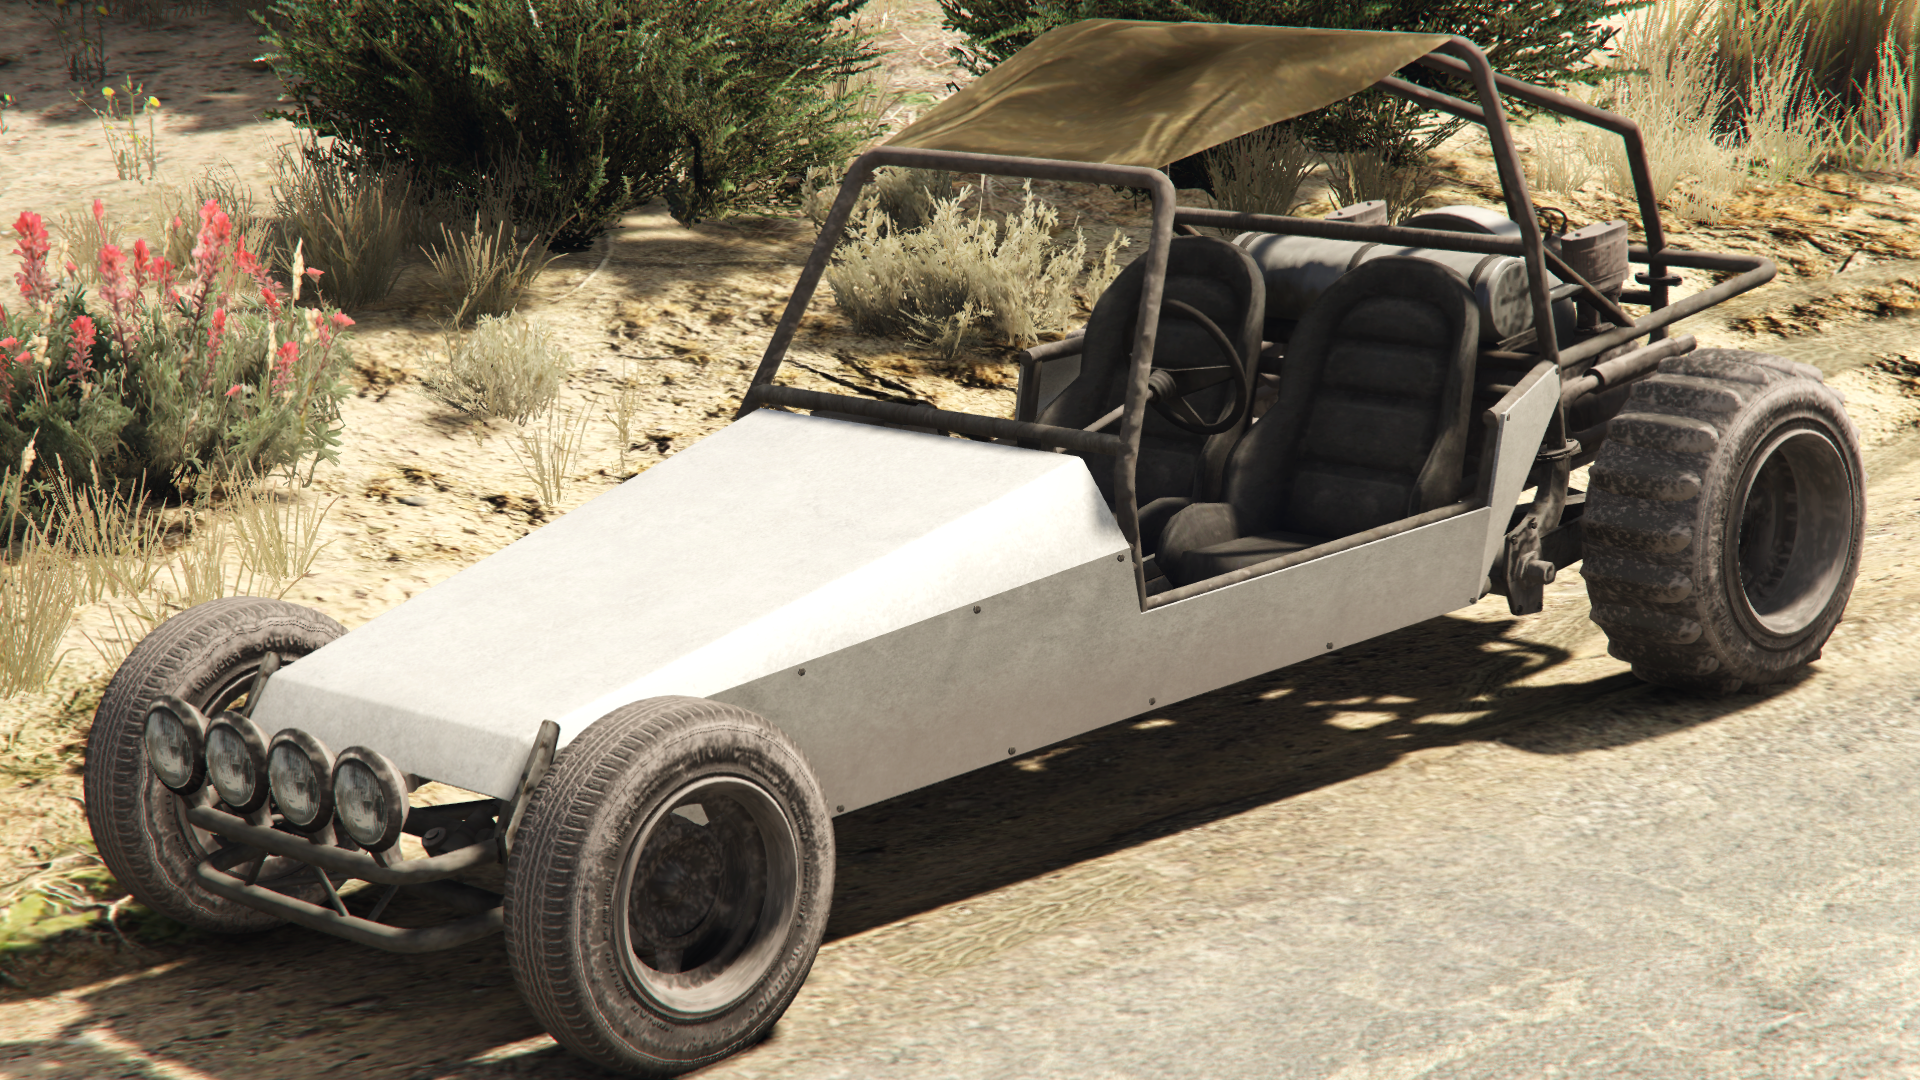 Dune Buggy | GTA Wiki | FANDOM powered by Wikia